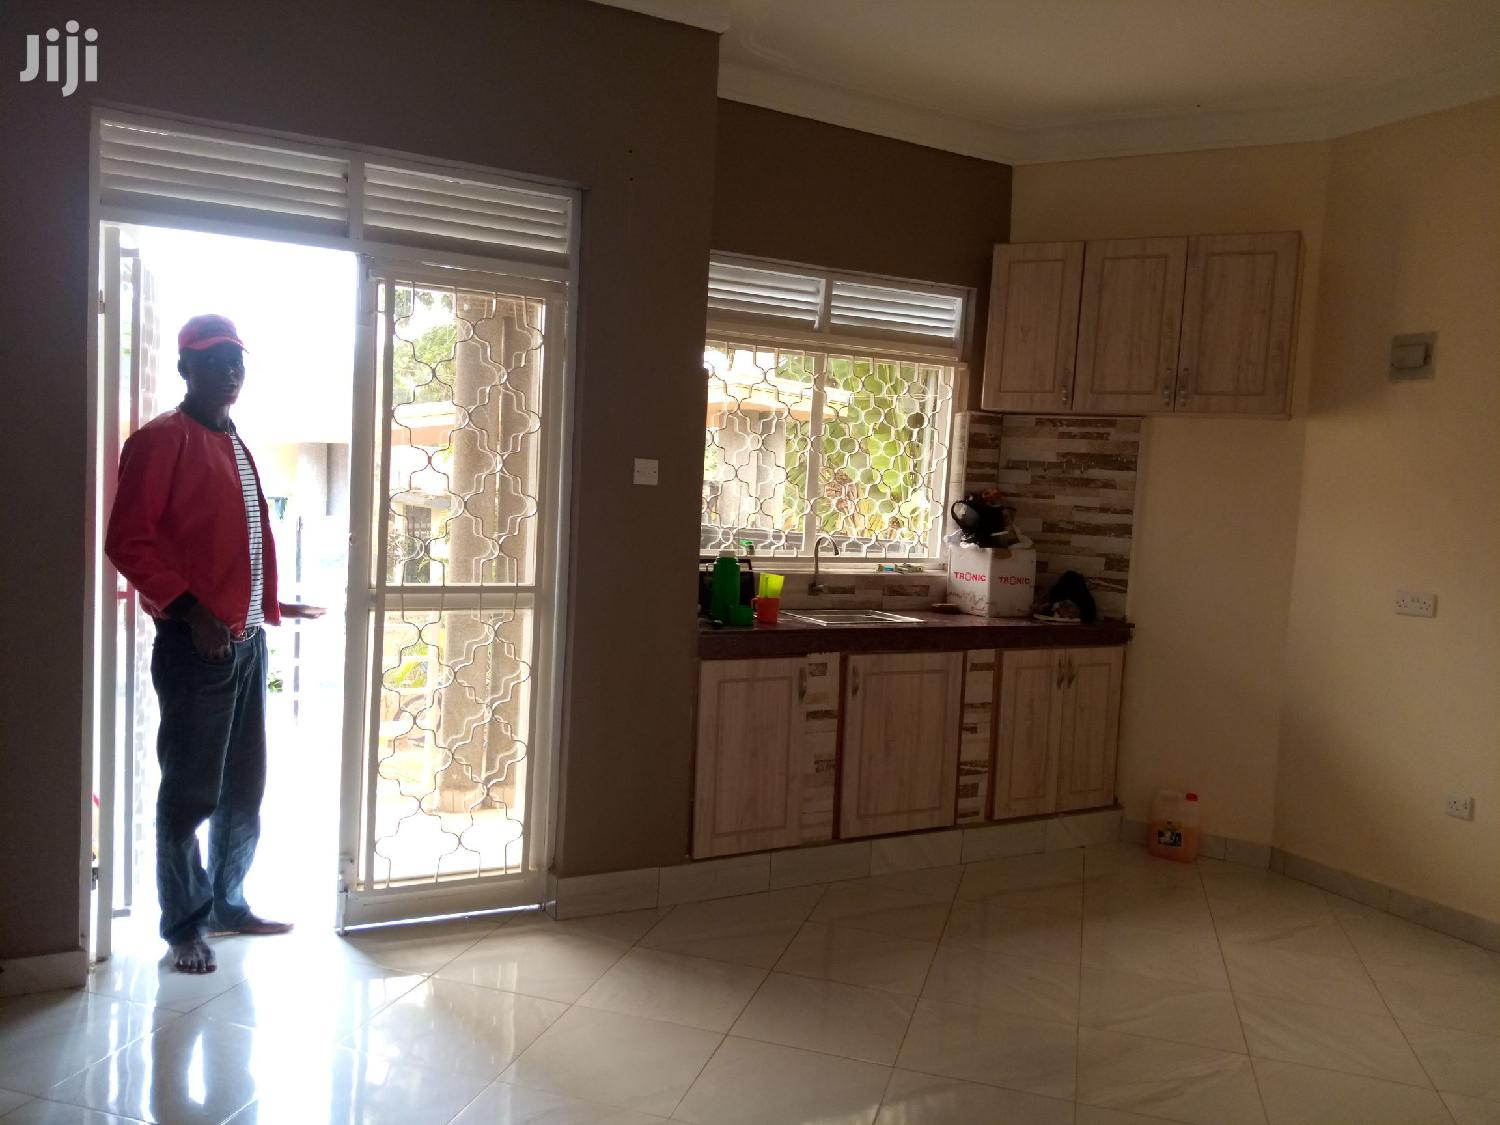 11 Units Rental For Sale In Kyanja | Houses & Apartments For Sale for sale in Kampala, Central Region, Uganda